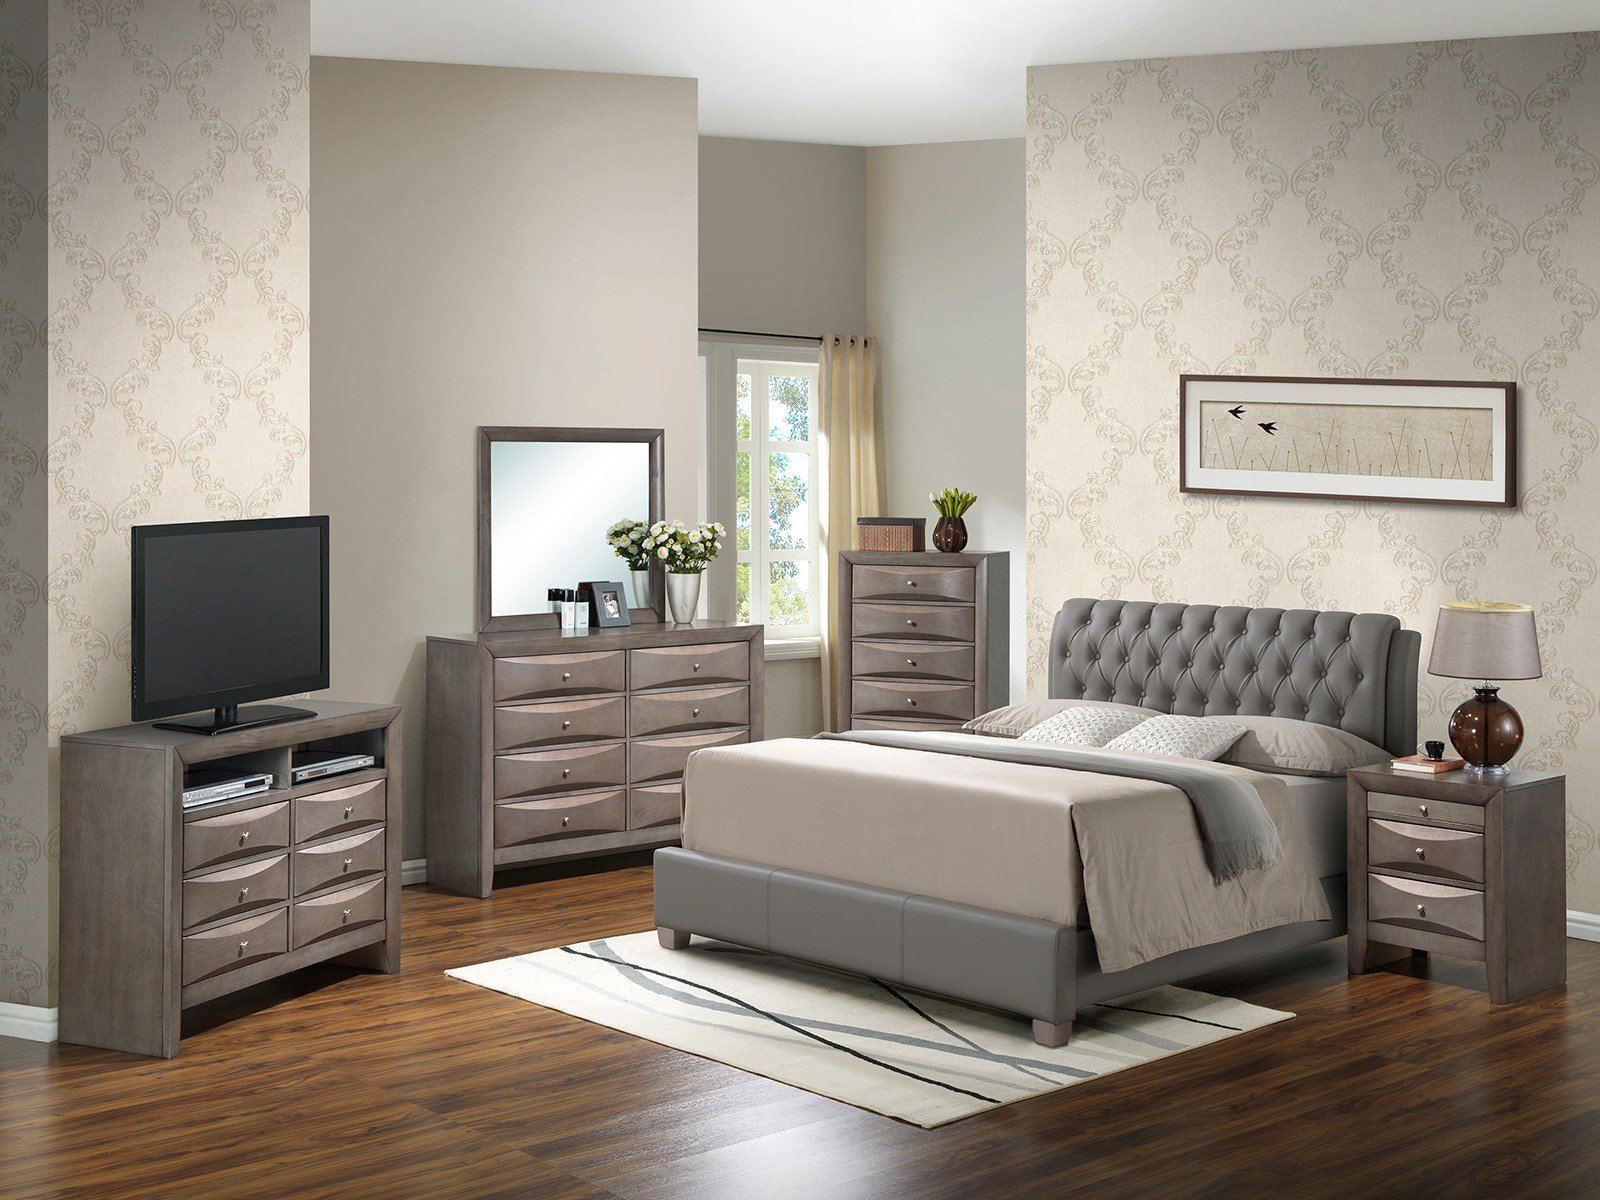 Best Glory Glory Furniture G1505C Bedroom Set In Gray G1505C With Pictures